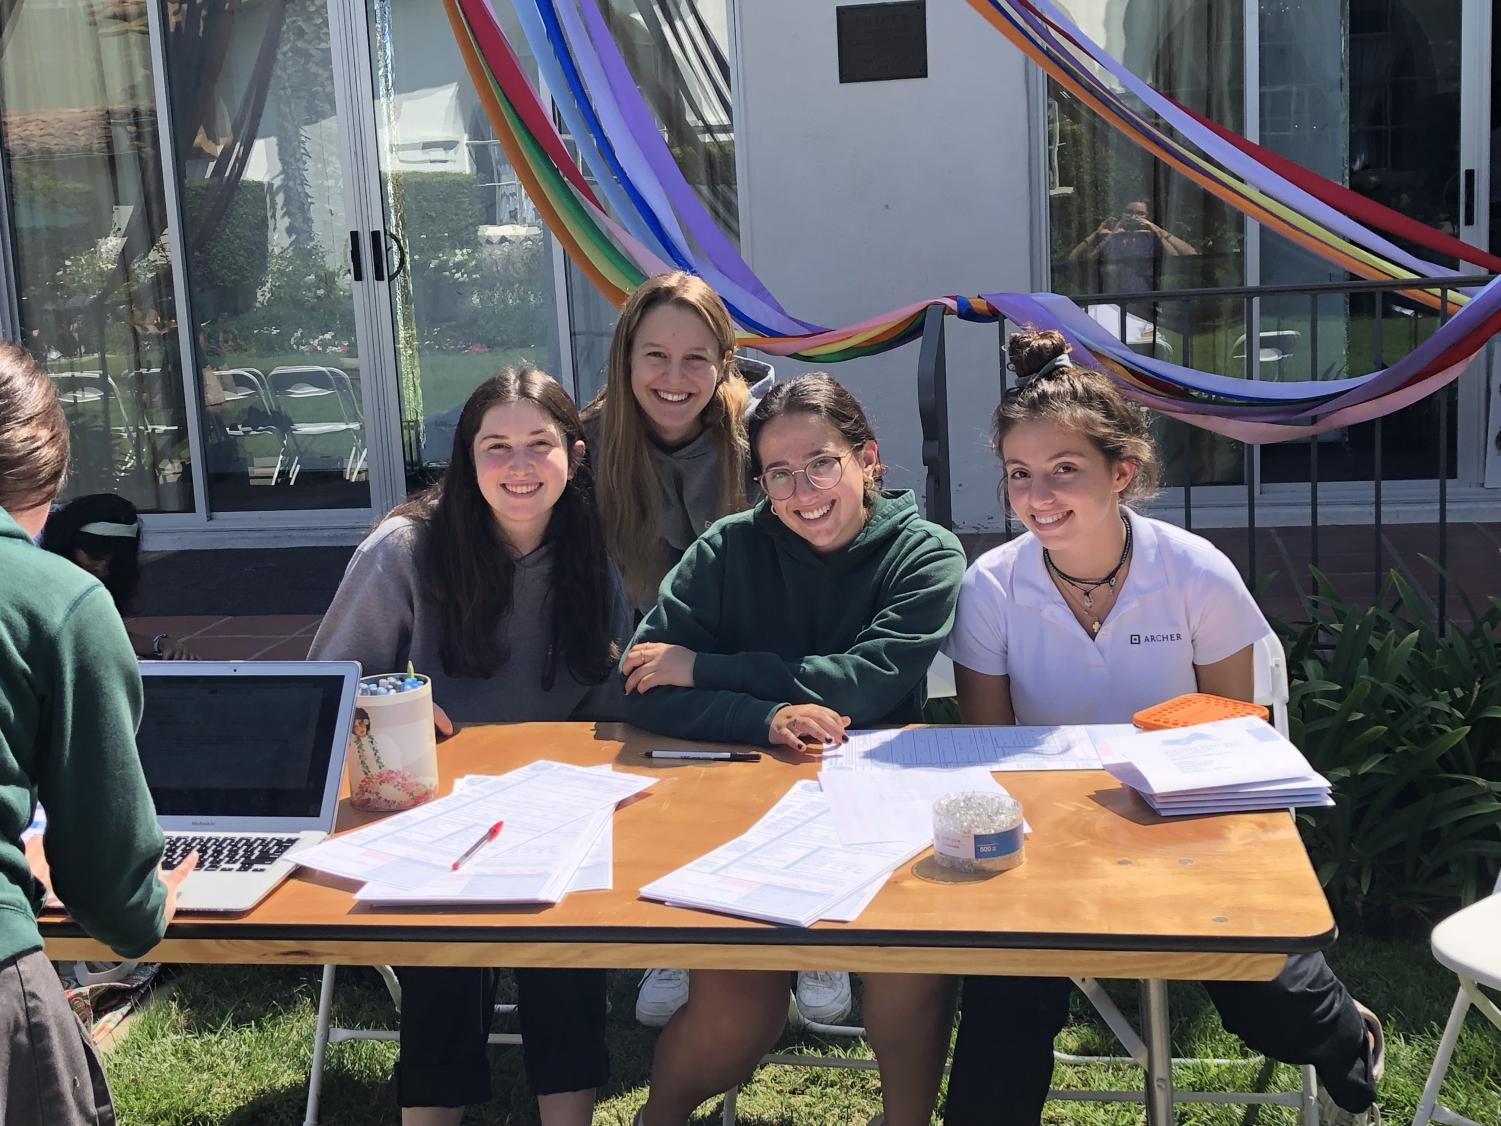 Students pre-register and register to vote on Monday, Sept. 23. The event was hosted by the Human Rights Watch Club.  Allie Worchell '20 is pictured in the center.